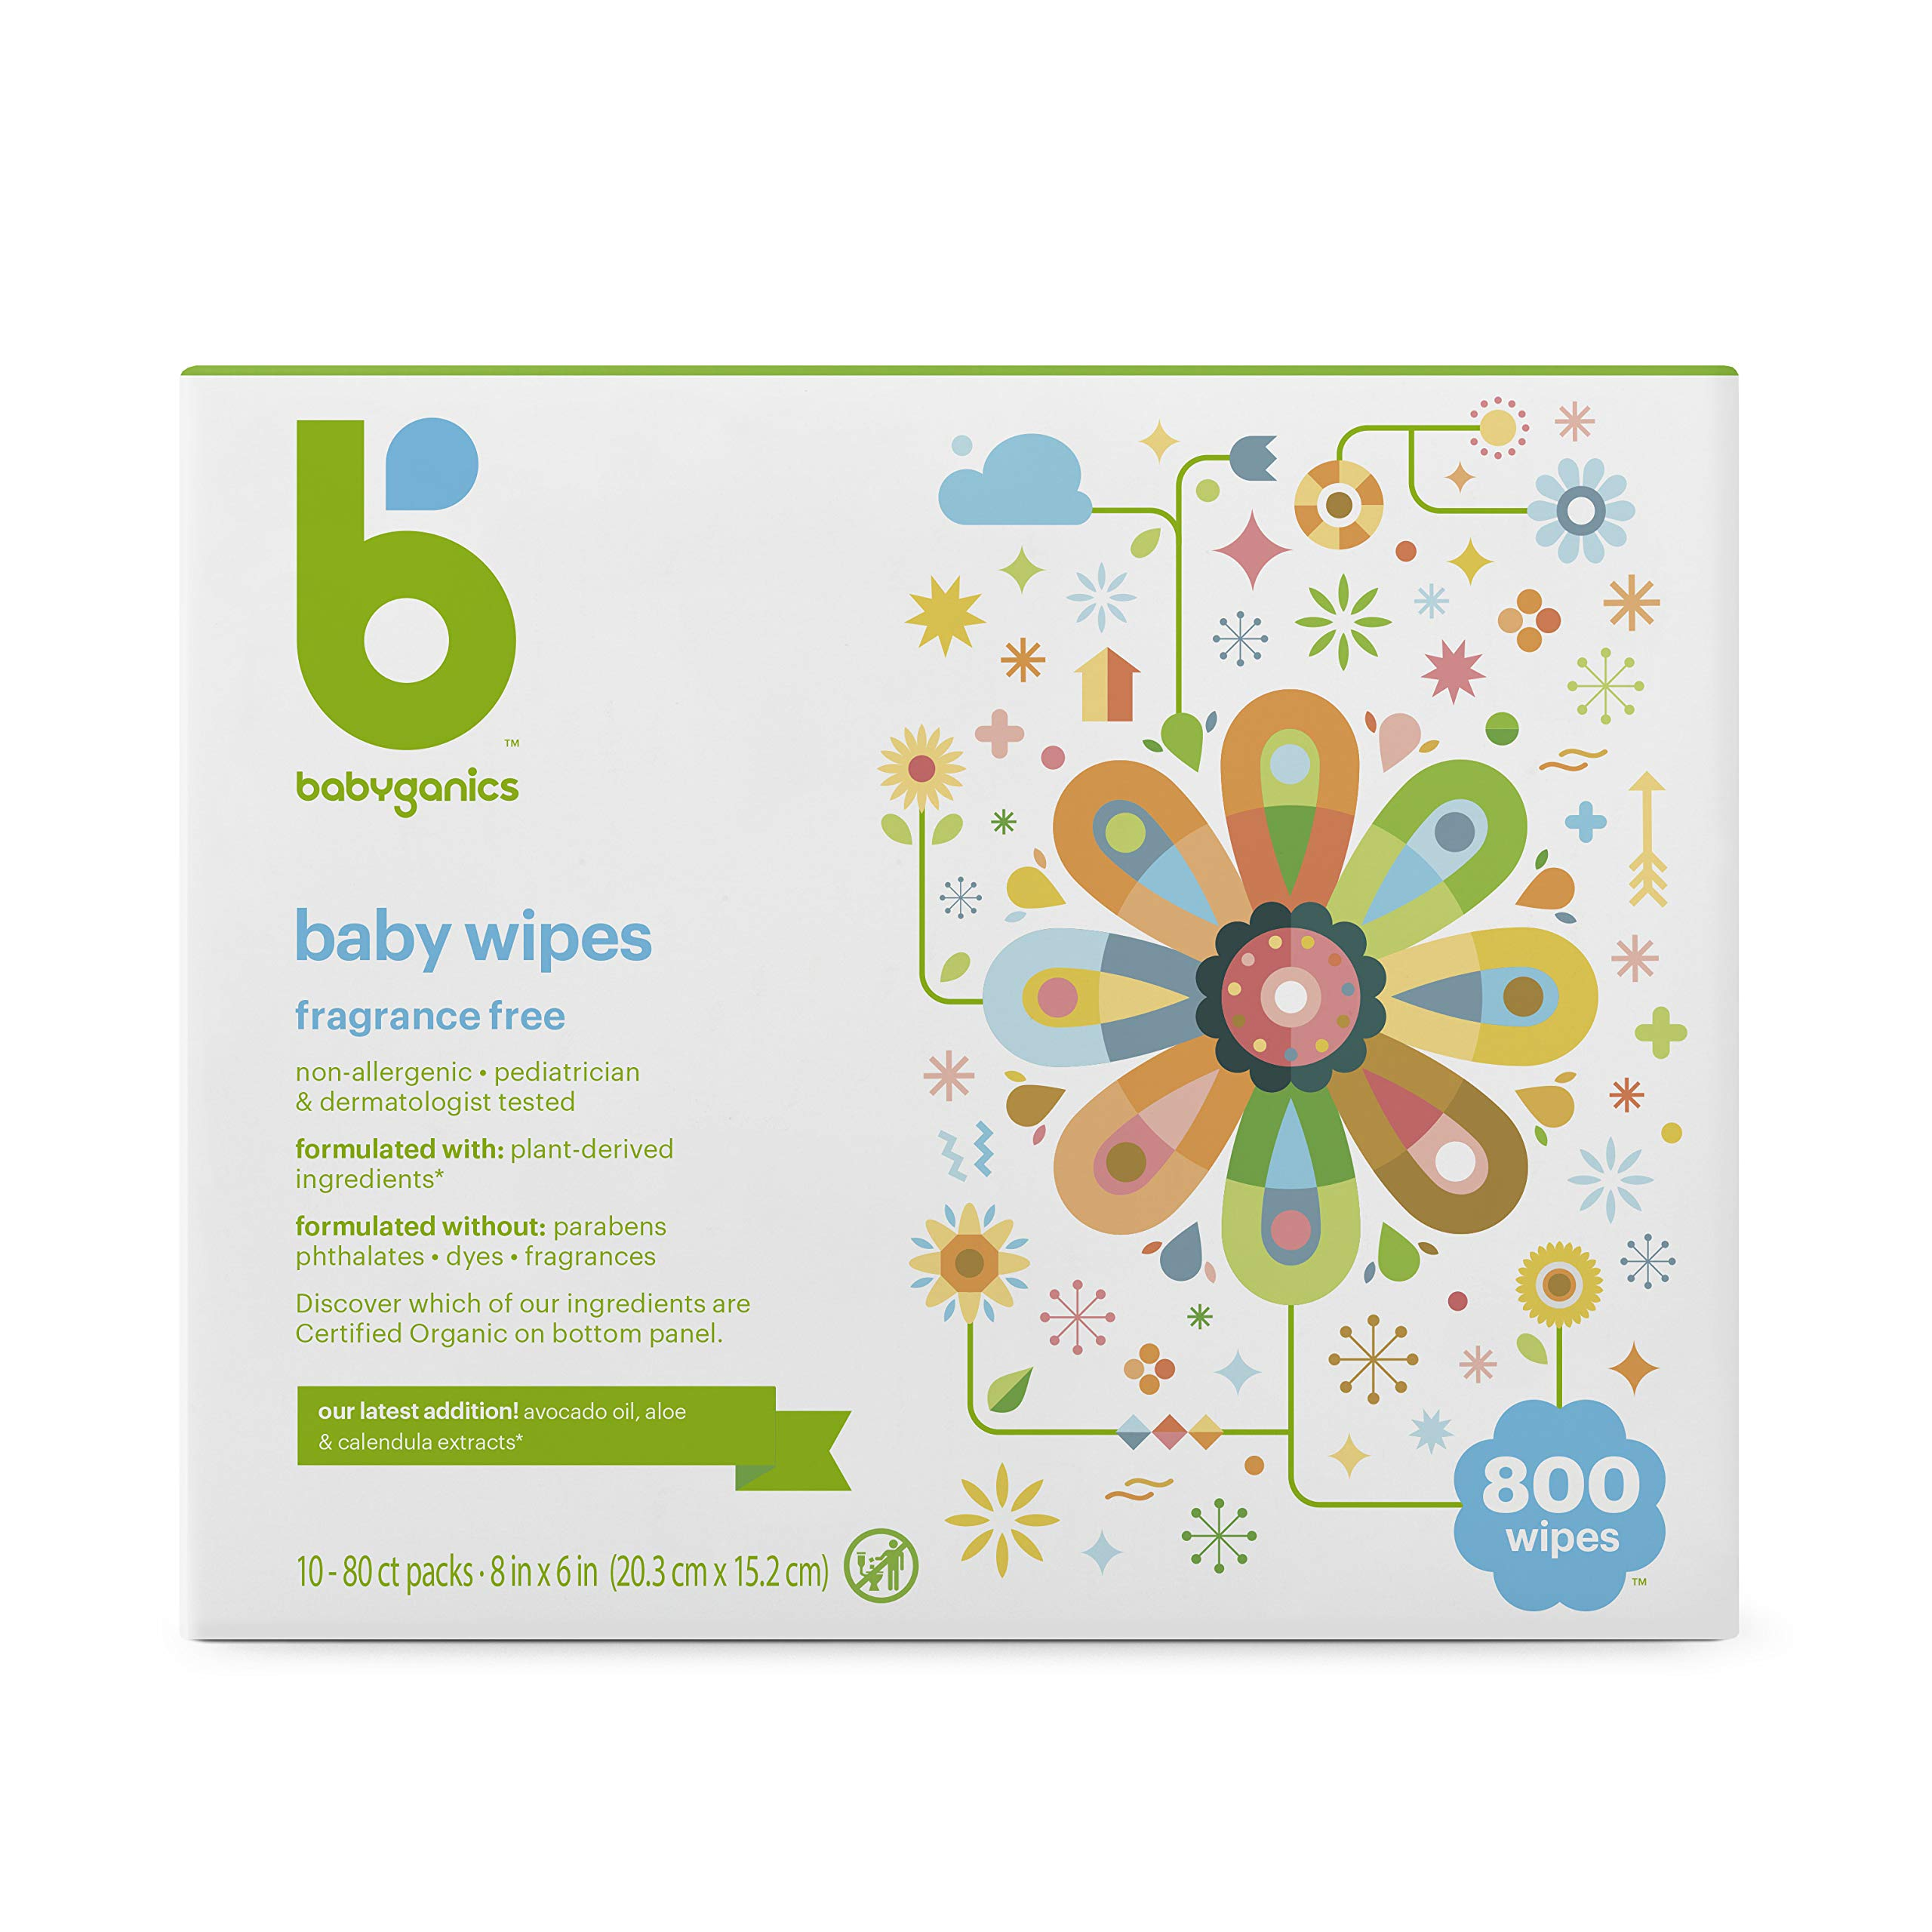 Babyganics Baby Wipes, Fragrance Free, 100 ct, 8 Pack, Packaging May Vary by Babyganics